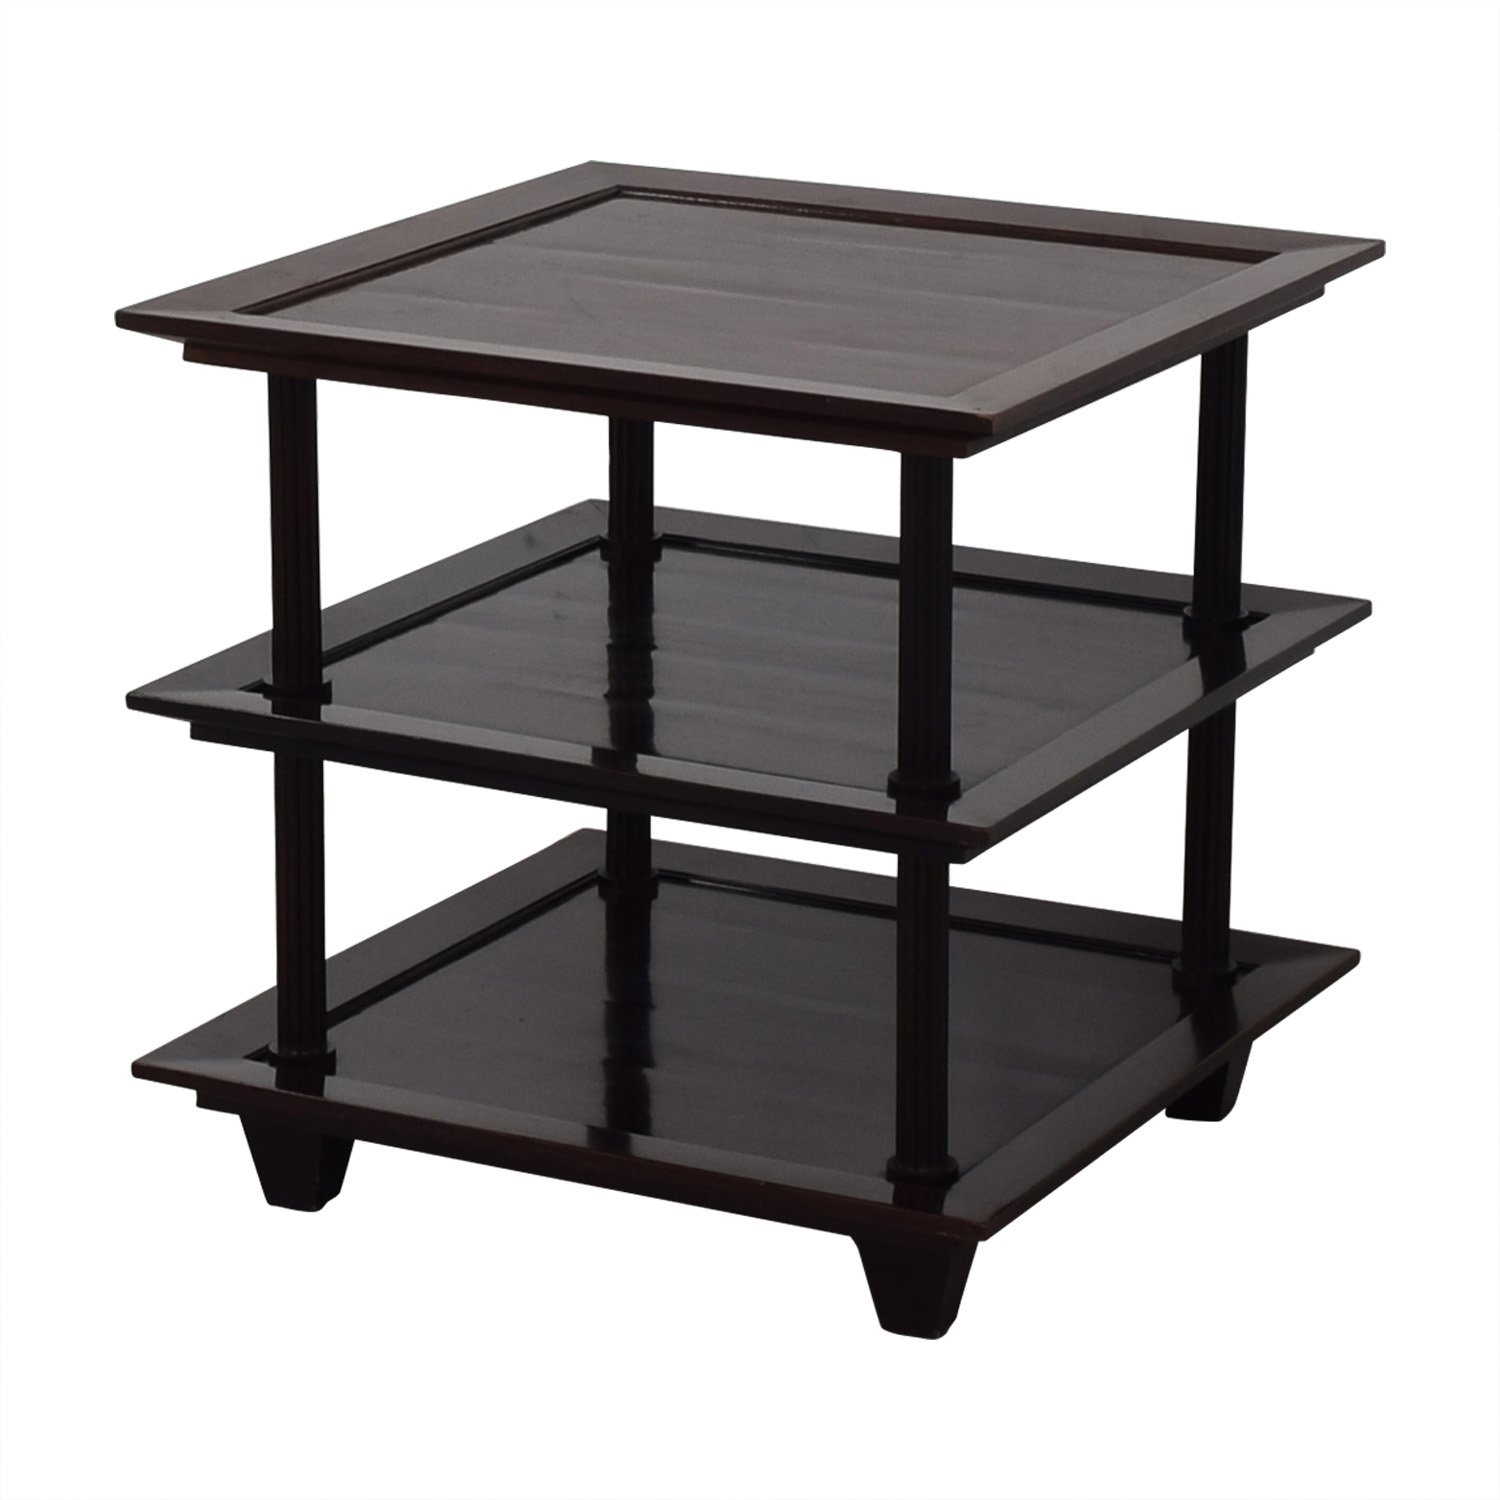 Baker Furniture by Barbara Barry Three Tiered Accent Table Baker Furniture